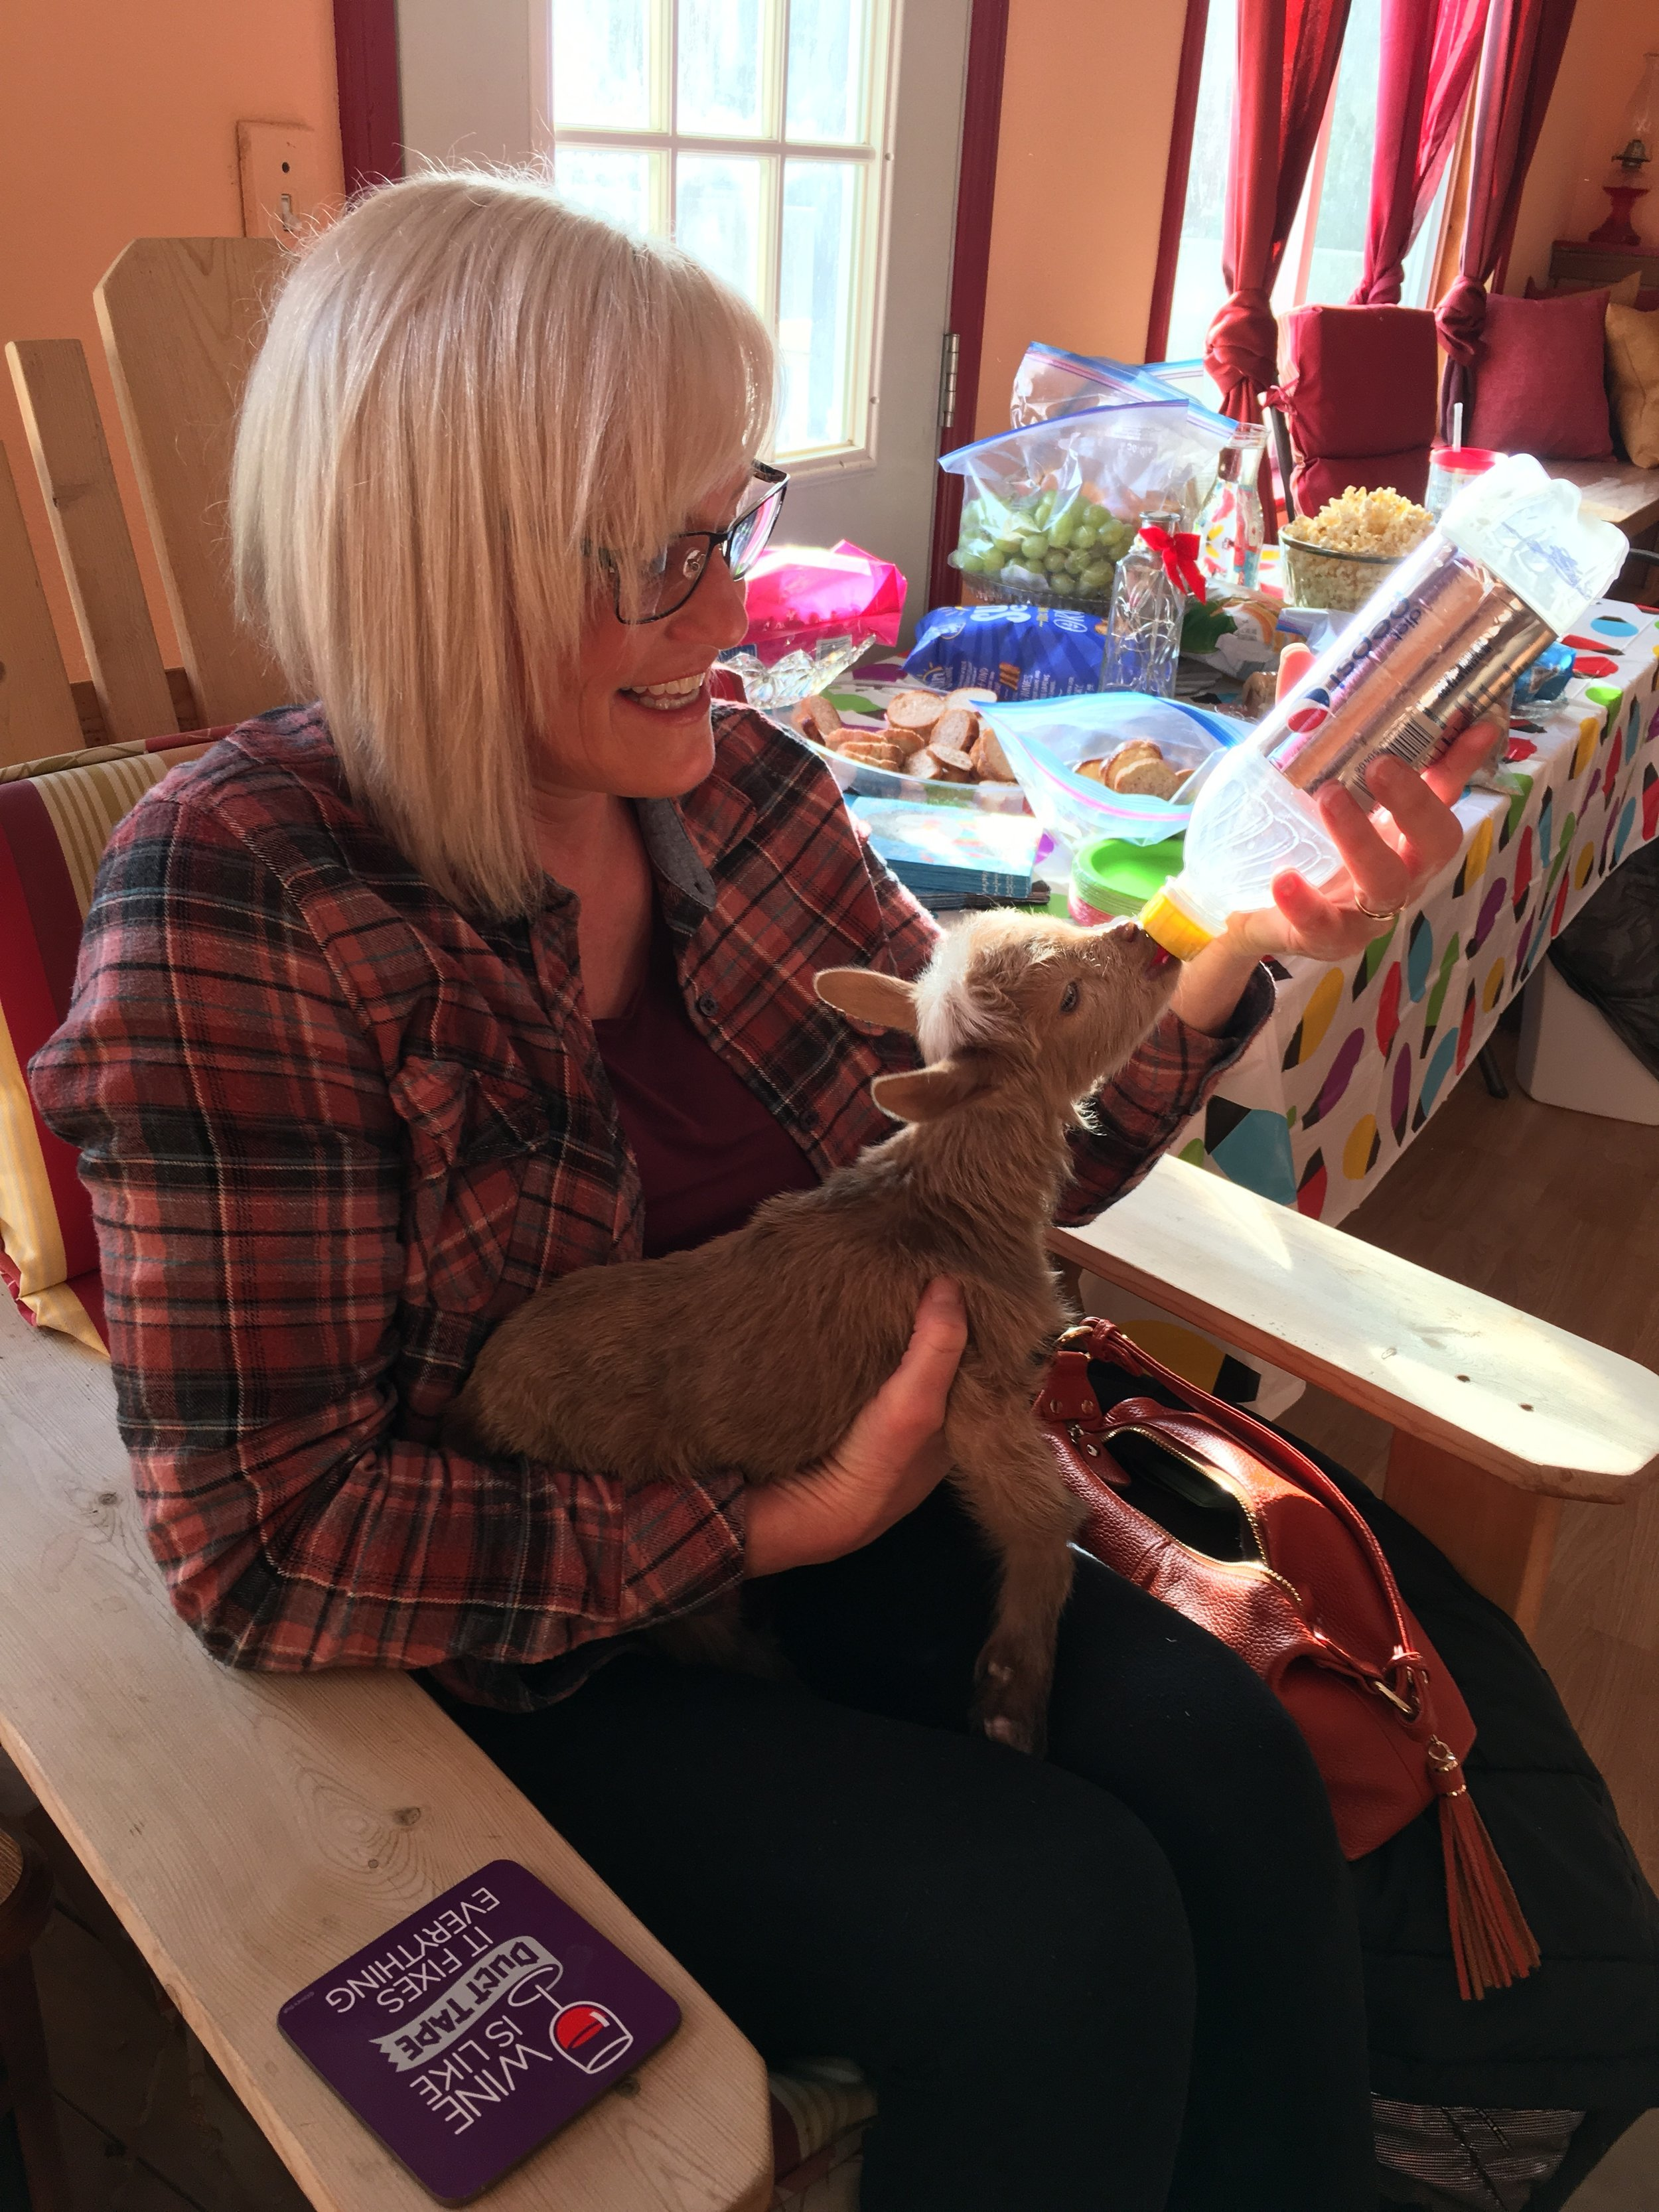 I got to feed an orphaned baby goat at my friends, Shannon's homemade wine tasting party.